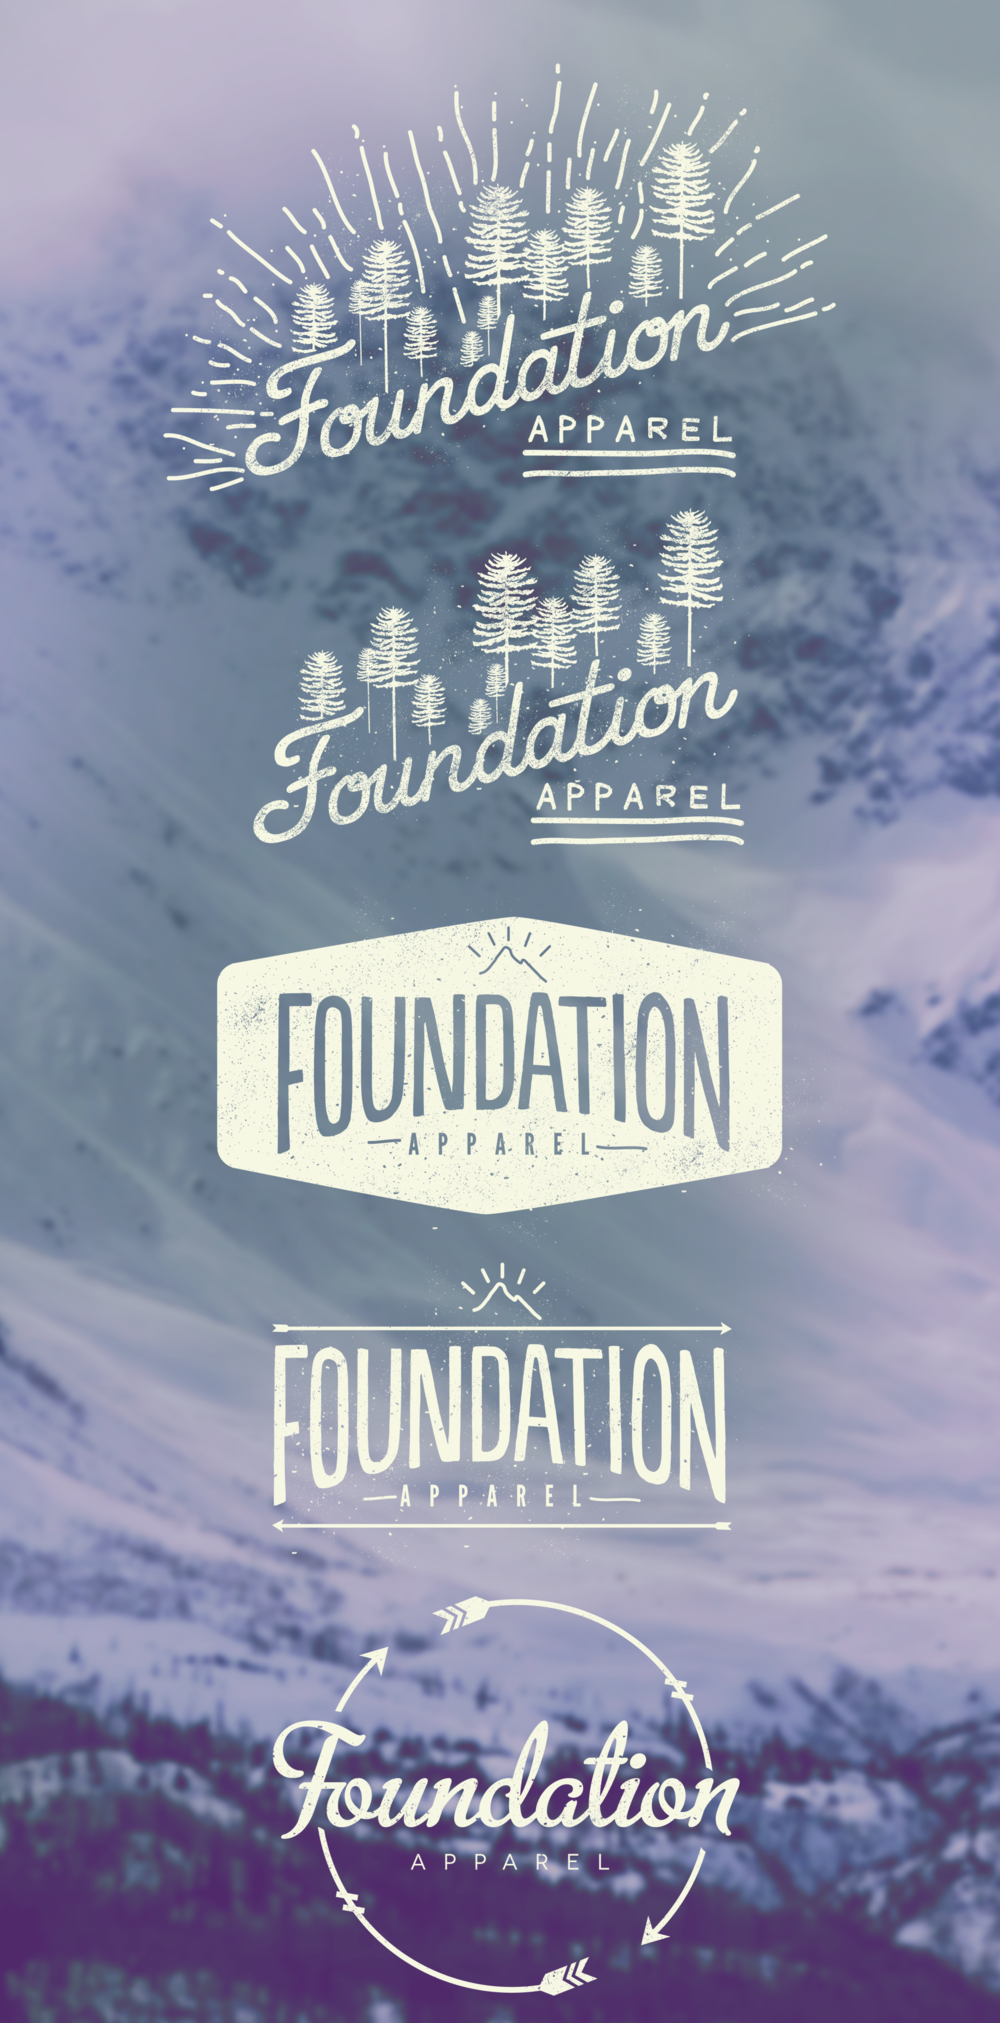 FOUNDATION APPAREL small.png